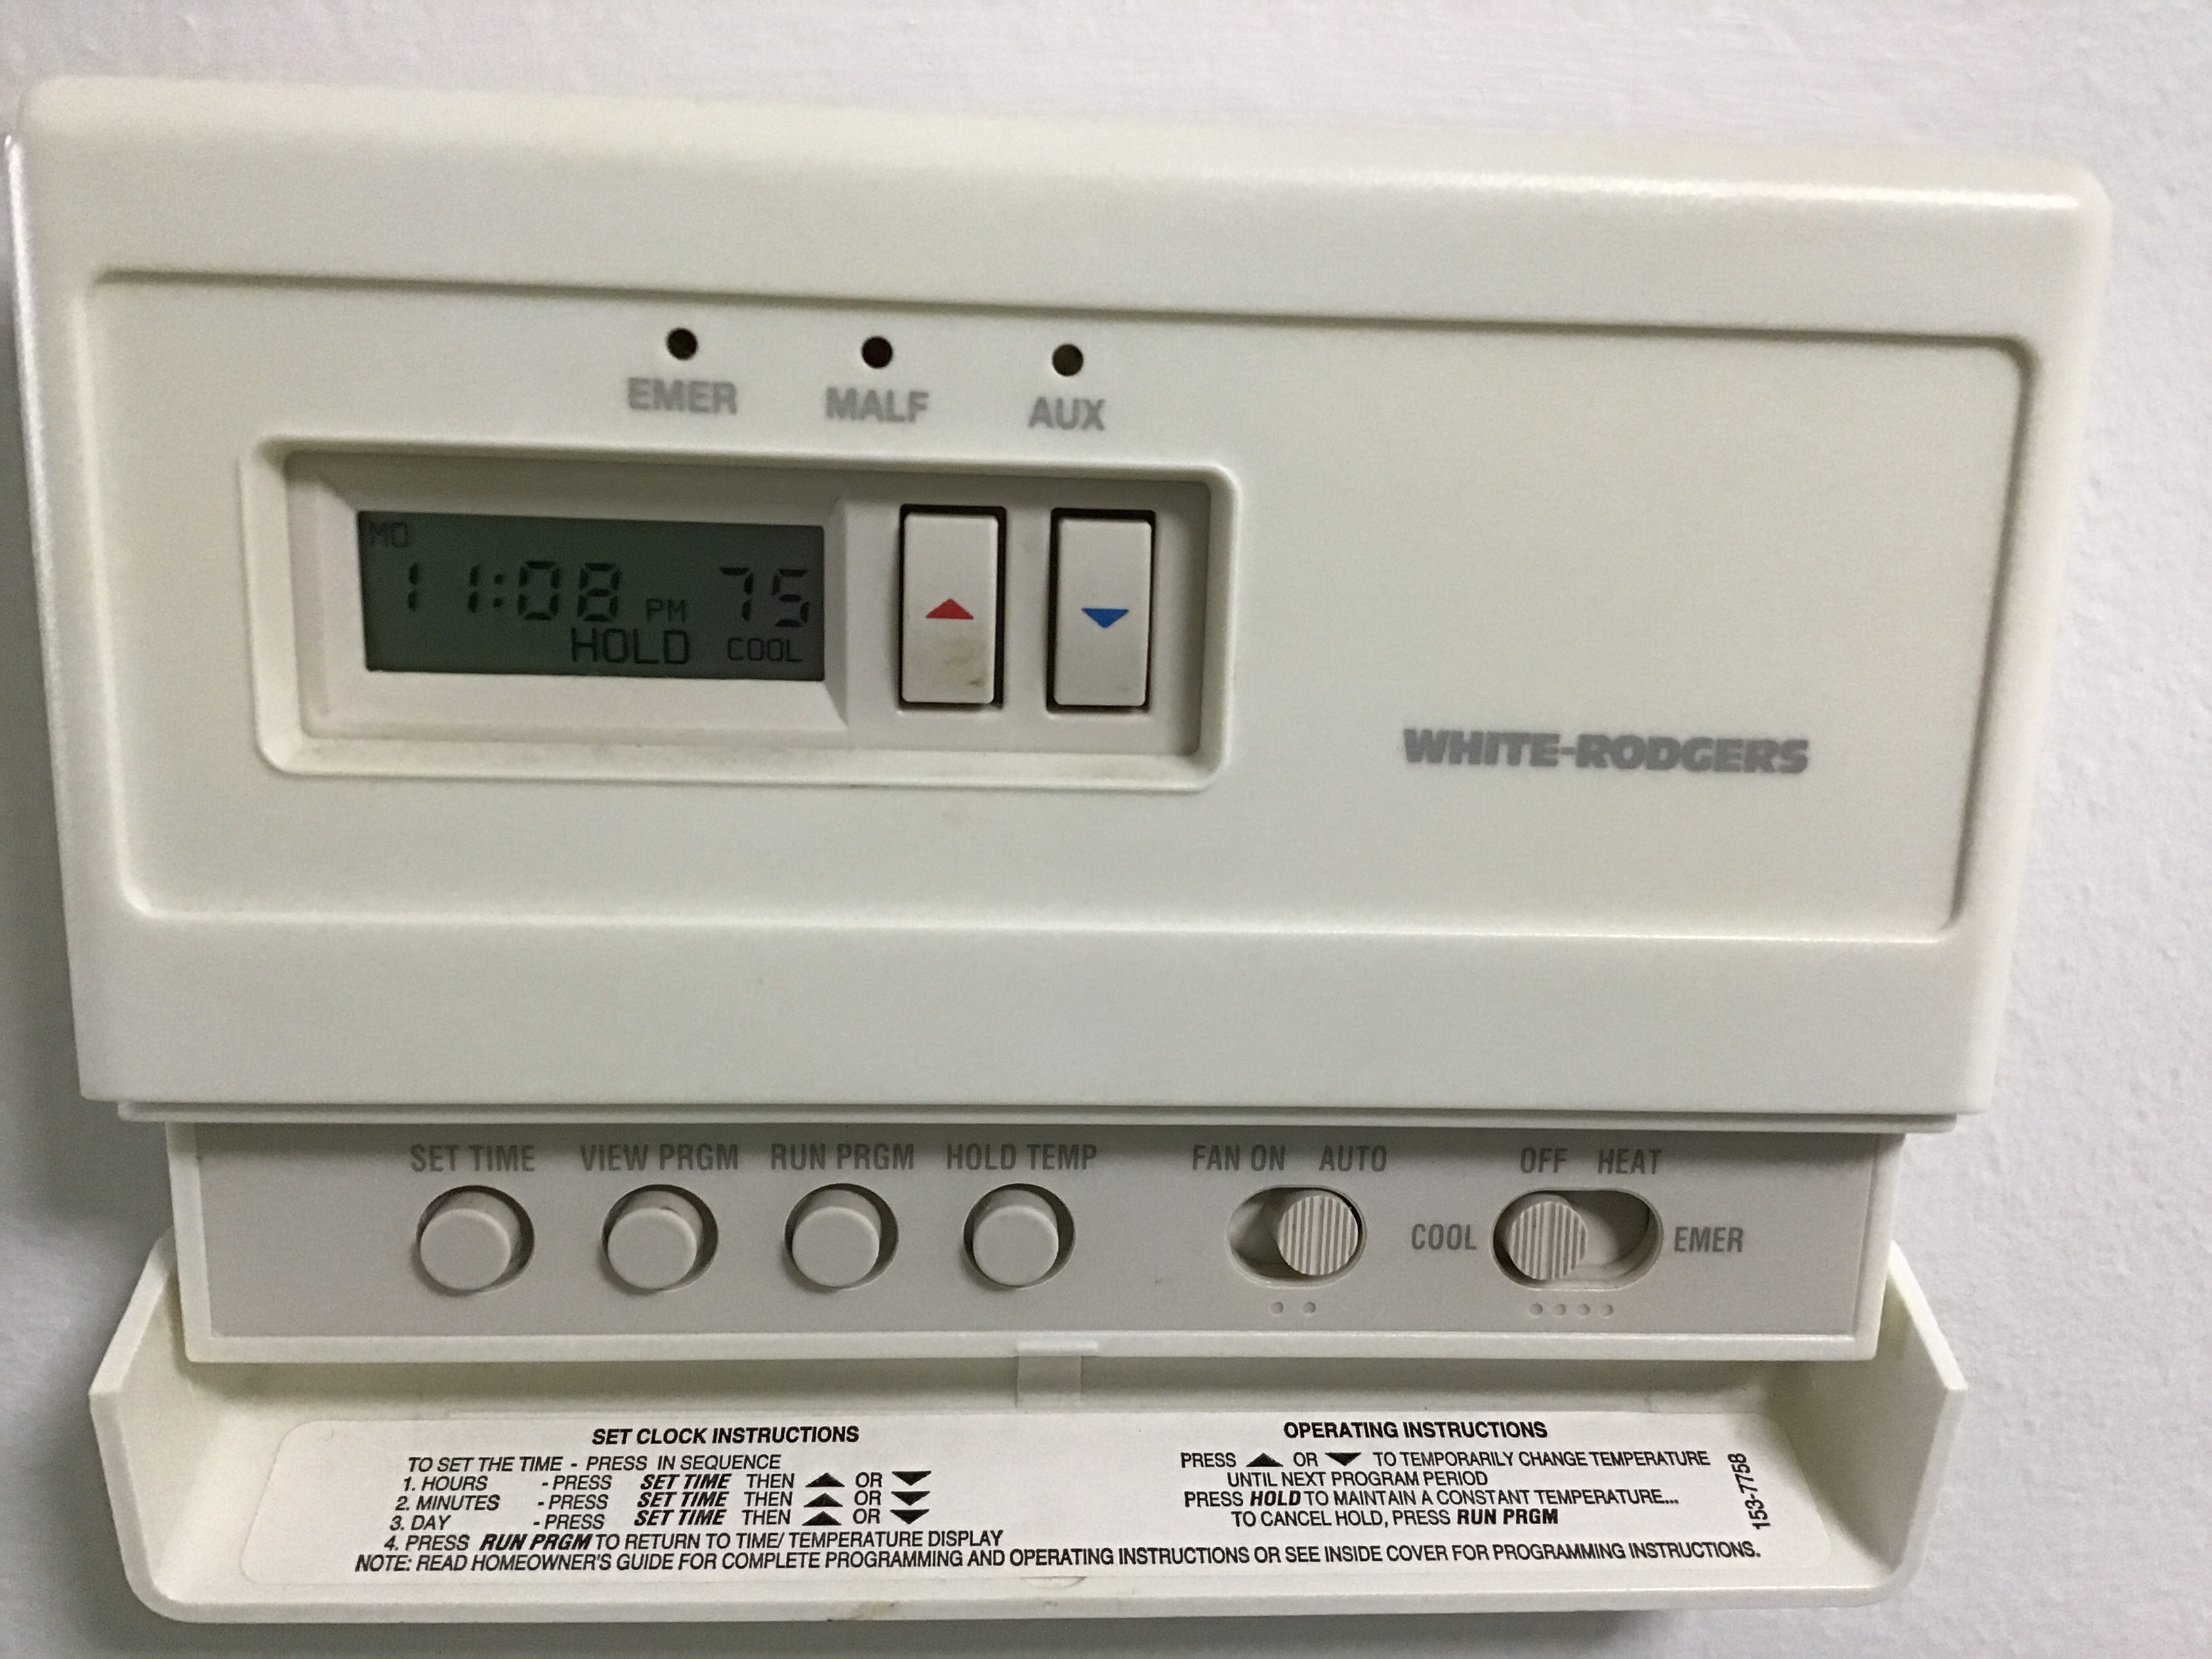 Set a default temp on thermastate when power goes out on